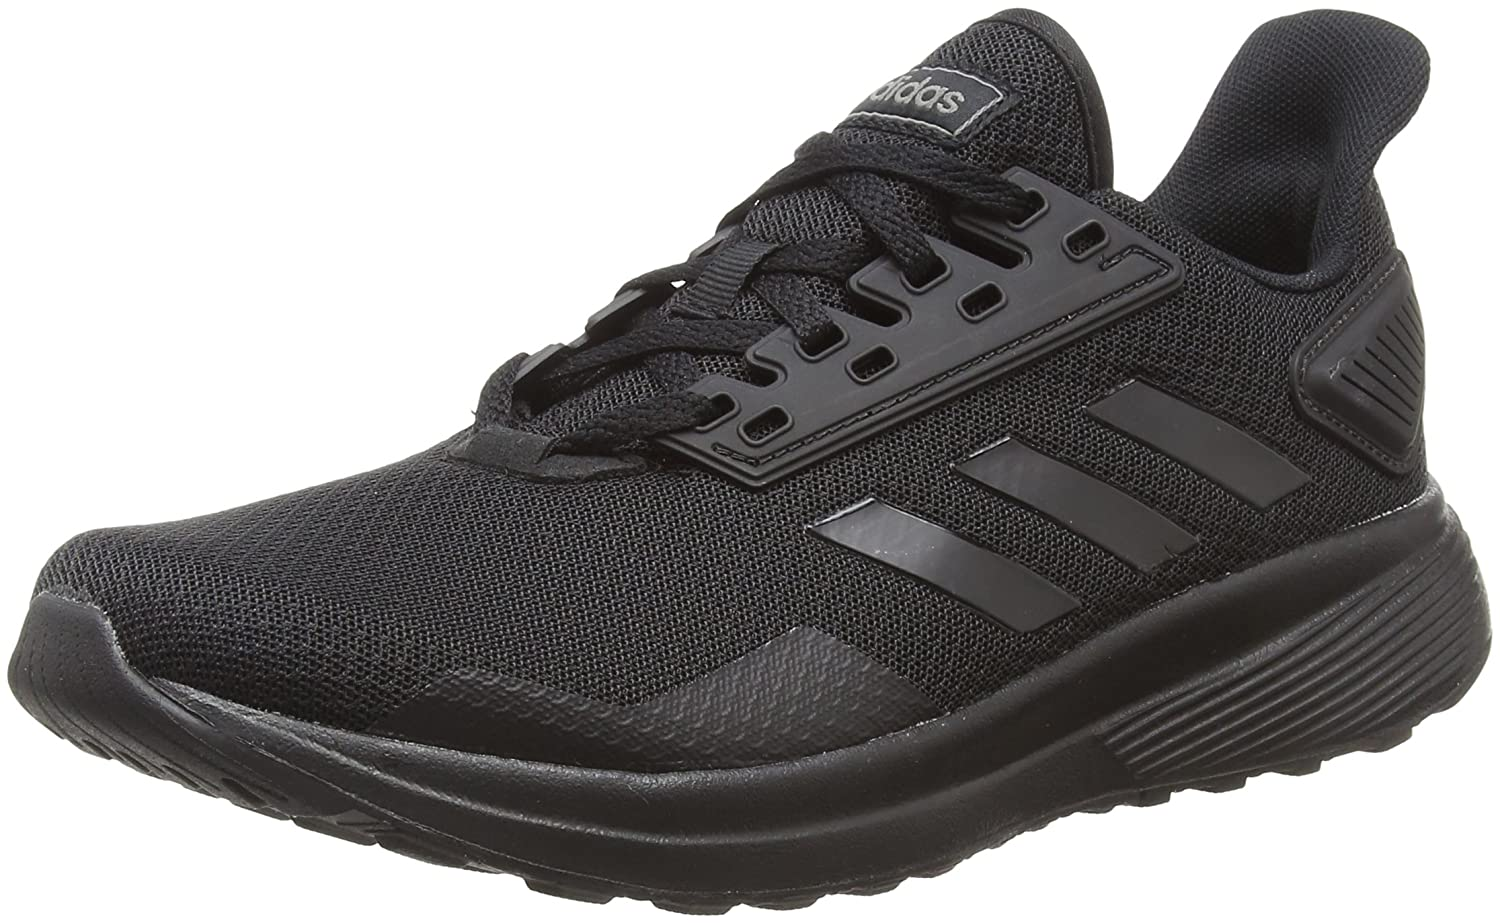 huge discount 76099 45e6e adidas Men s Duramo 9 Running Shoes Black  Amazon.co.uk  Shoes   Bags